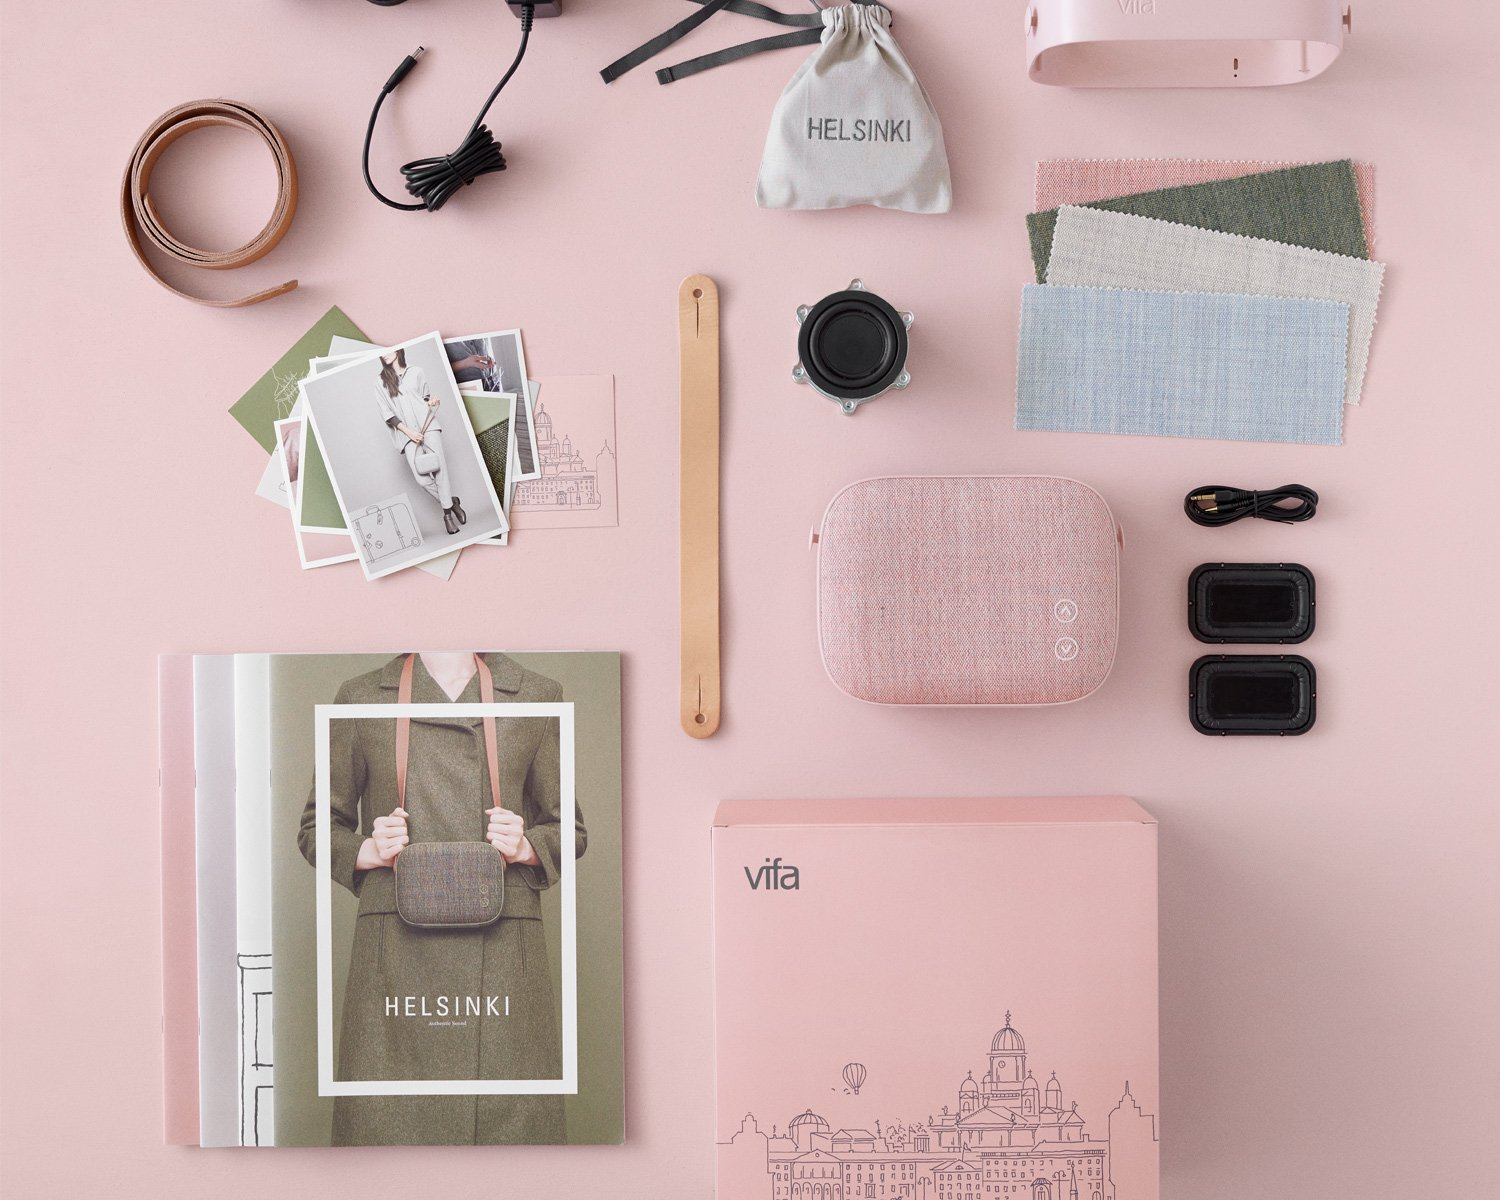 vifa packaging